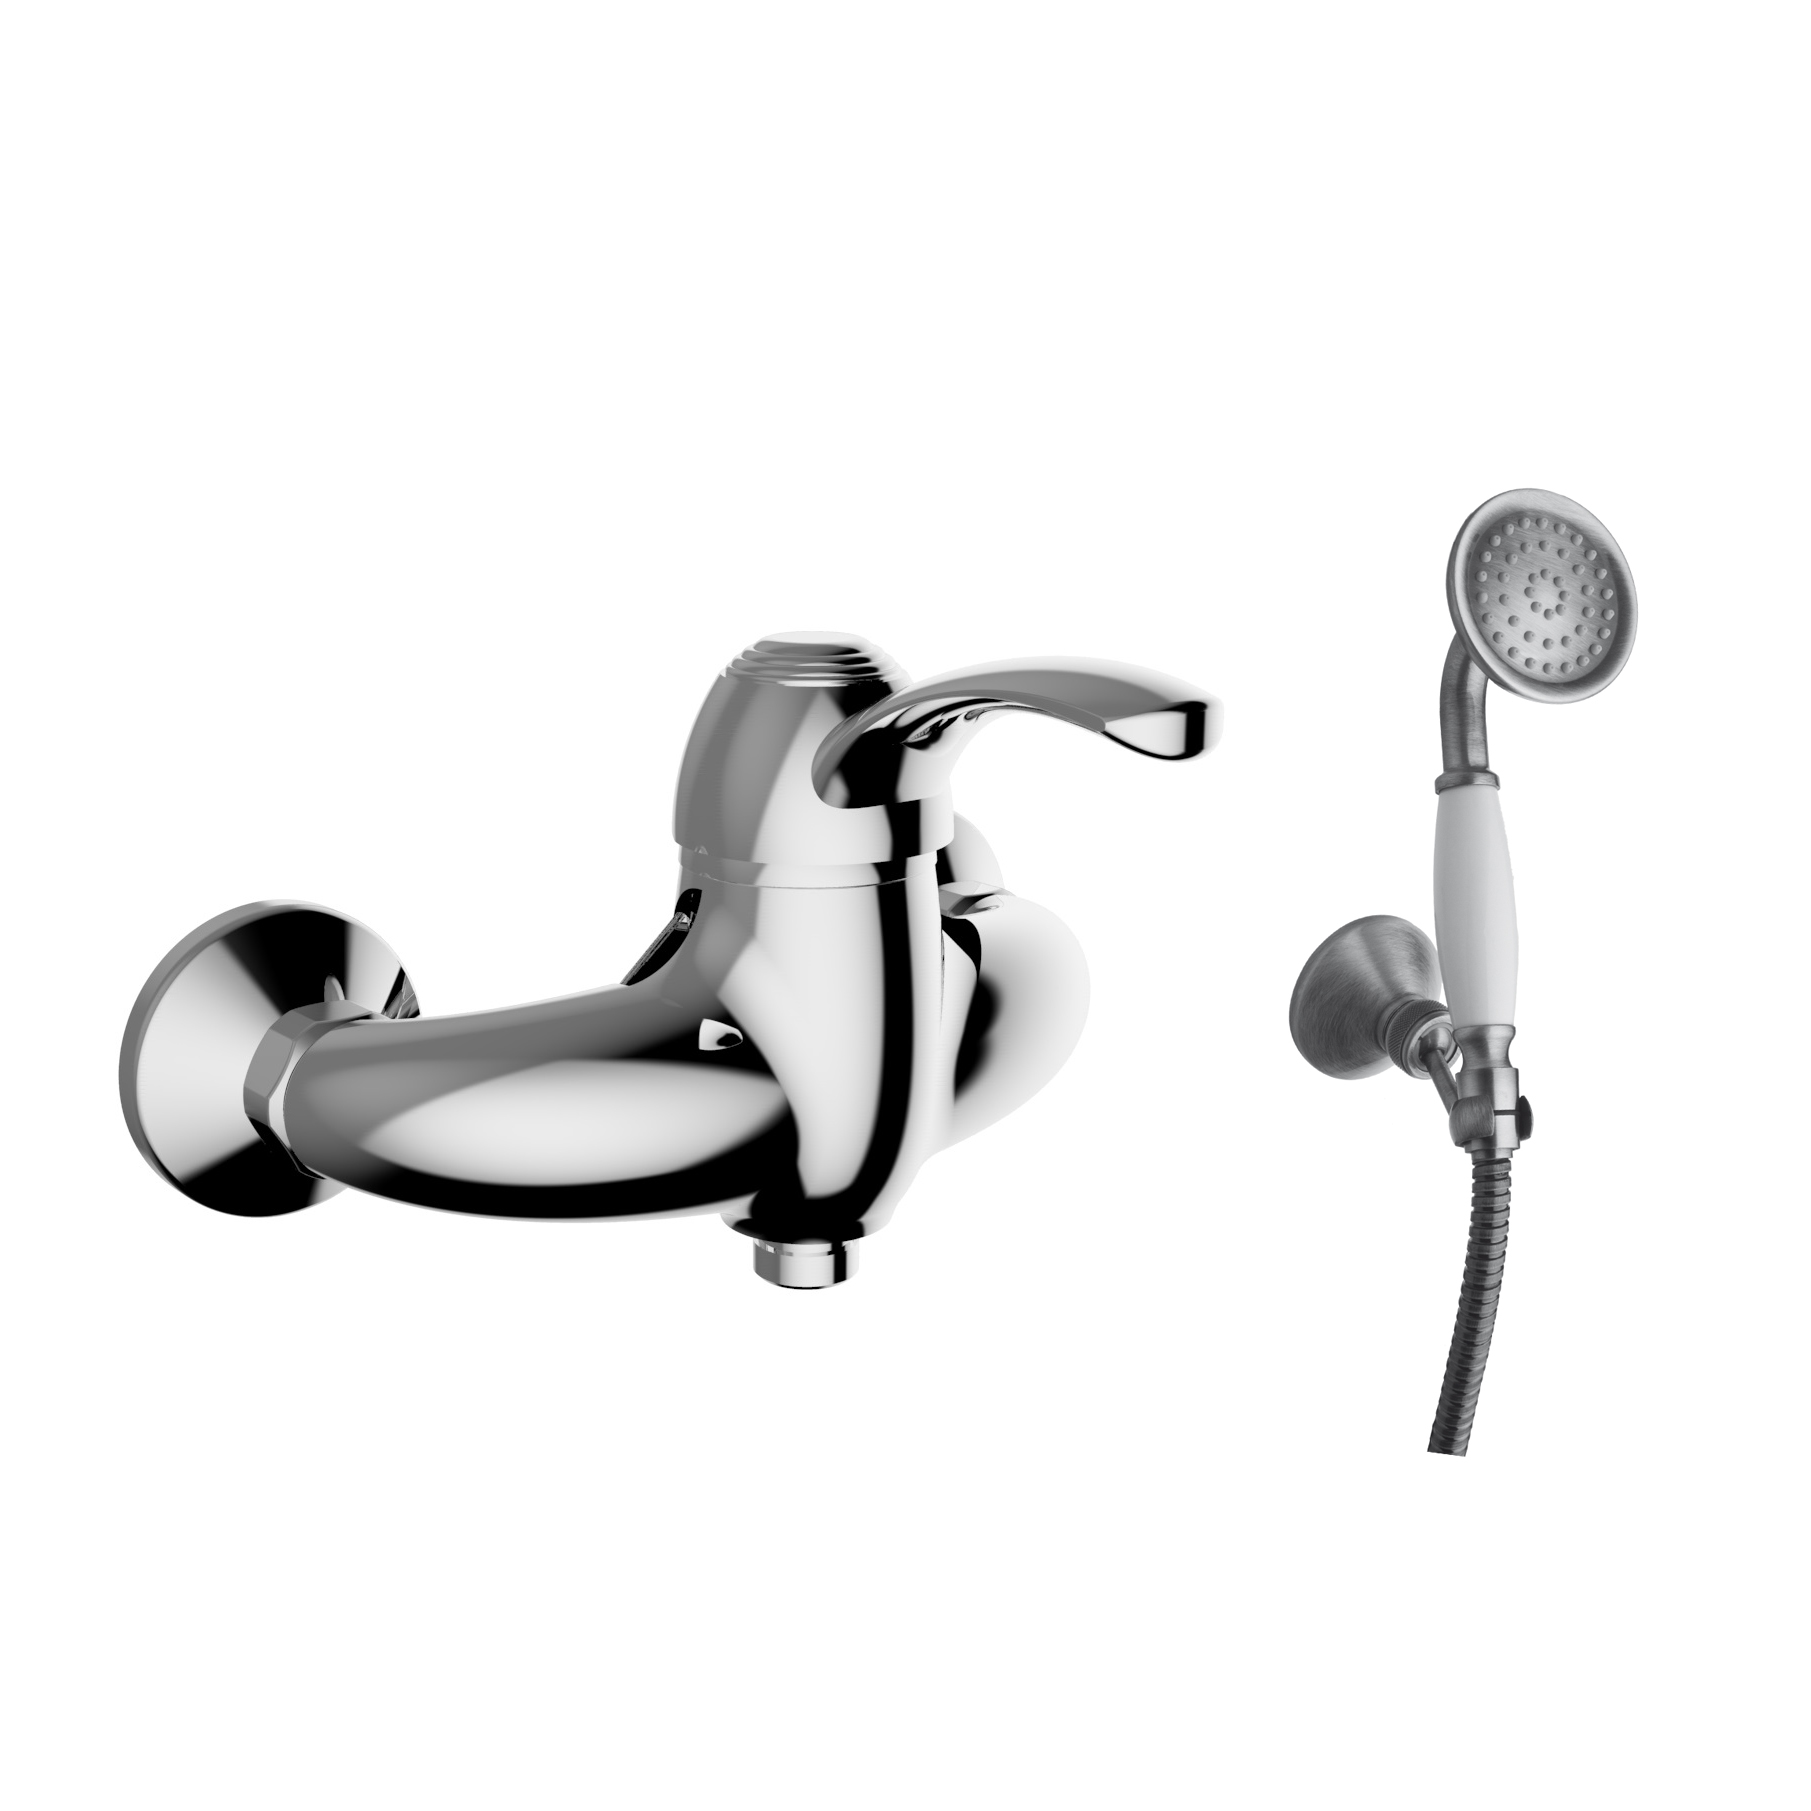 Immagine HD JAR 2 shower mixer